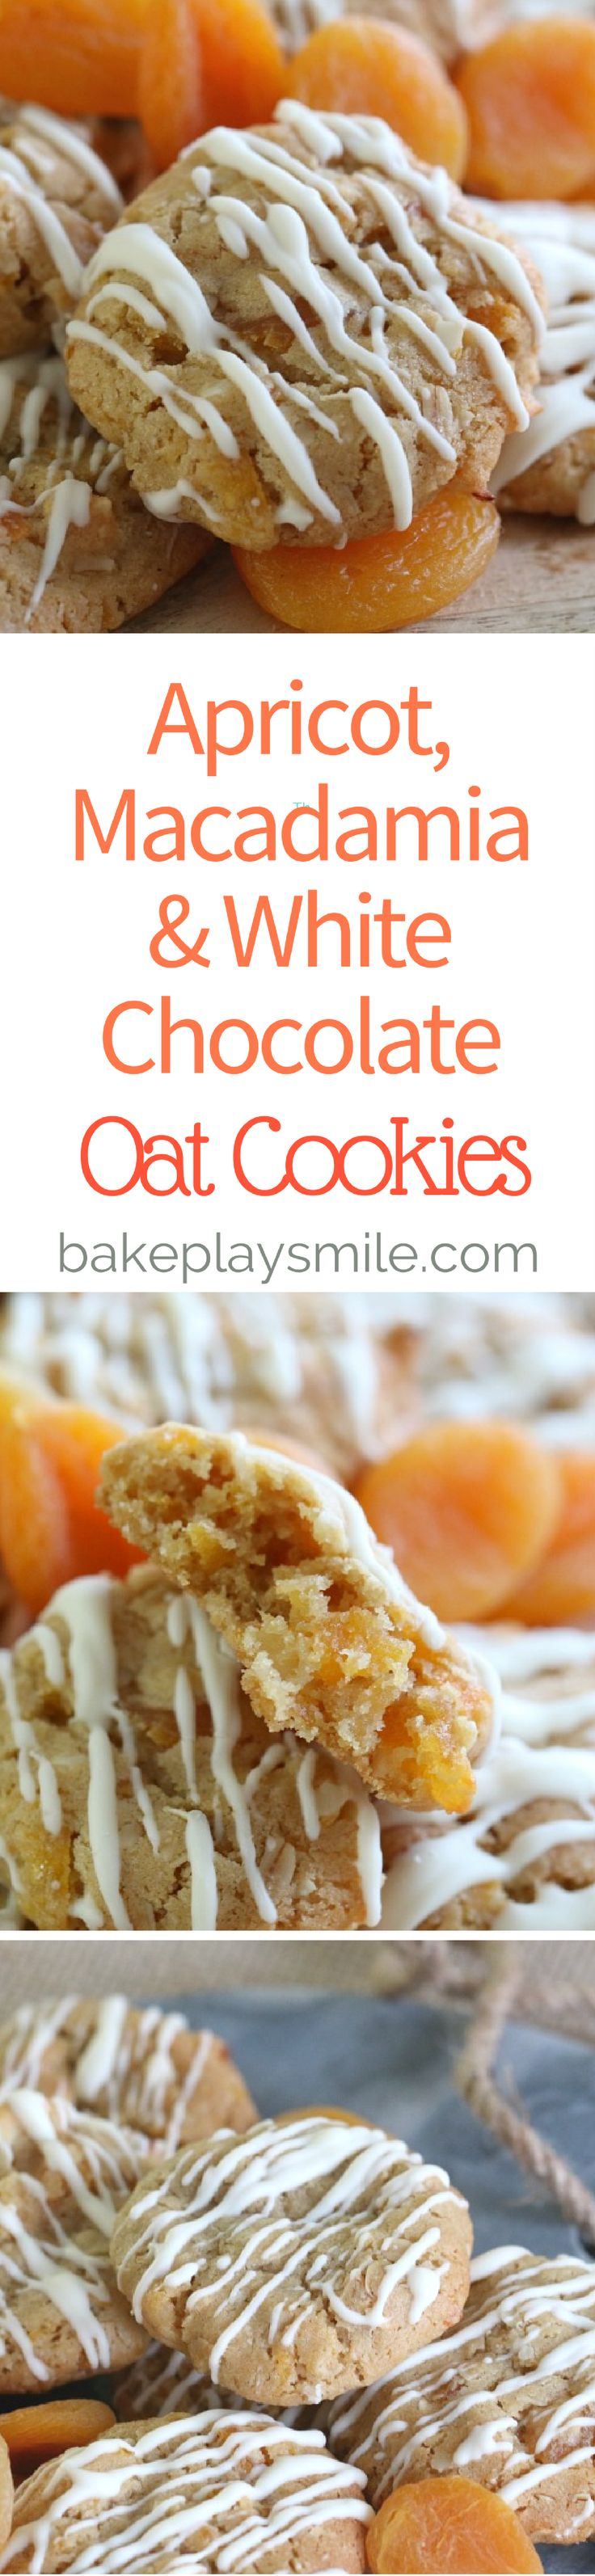 Apricot, Macadamia & White Chocolate Oat Cookies  The most delicious Apricot, Macadamia & White Chocolate Oat Cookies EVER. Hands-down my favourite new cookie flavour combination!!   #apricot #chocolate #macadamia #cookies #biscuits #easy #baking #conventional #thermomix